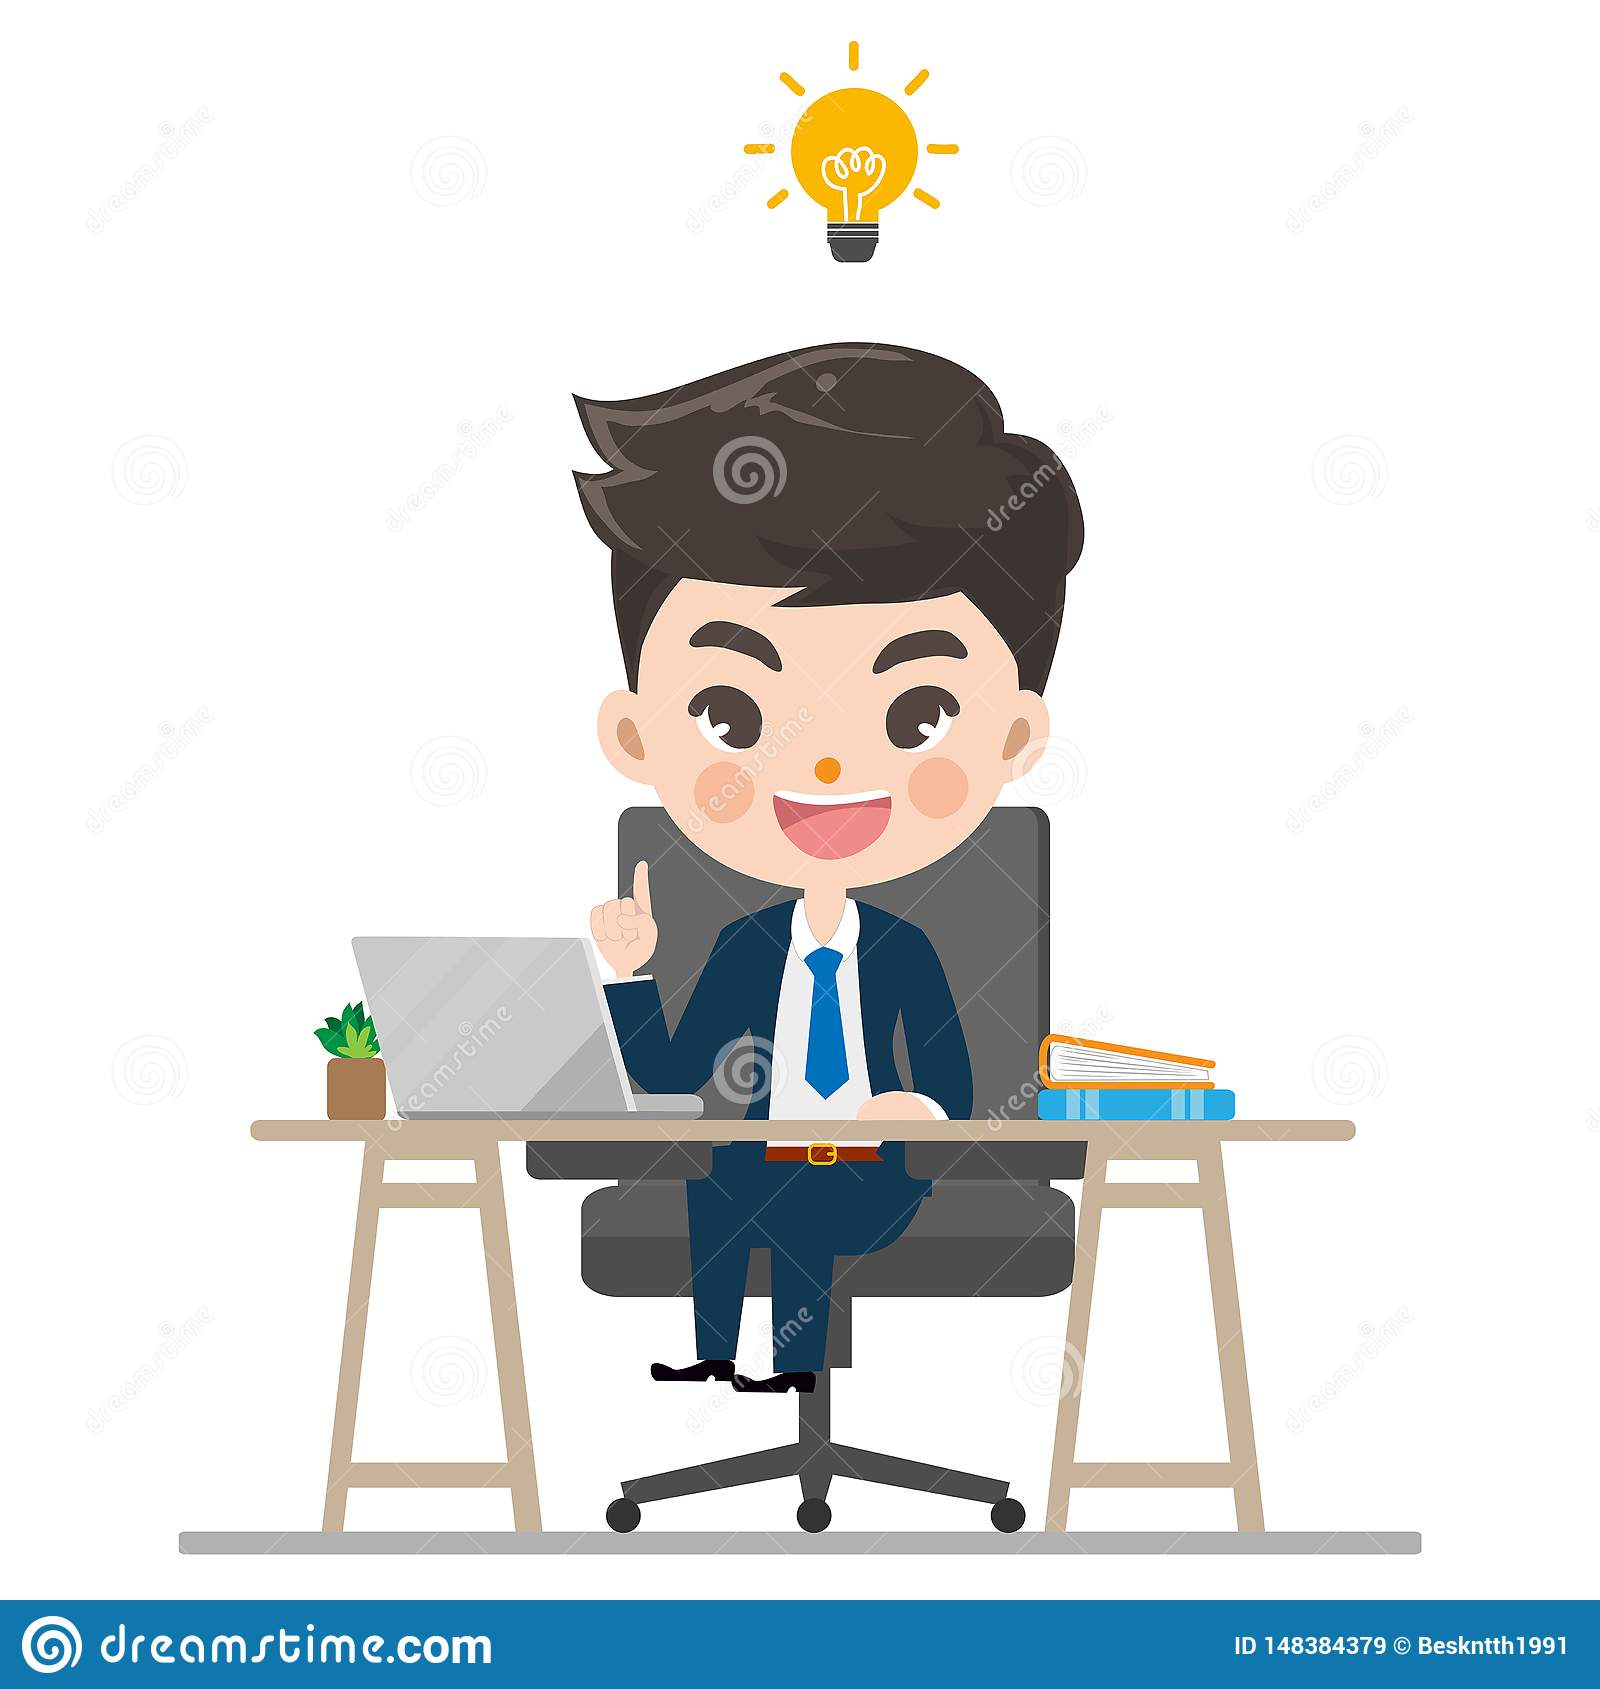 Businessman works and smile in the office.